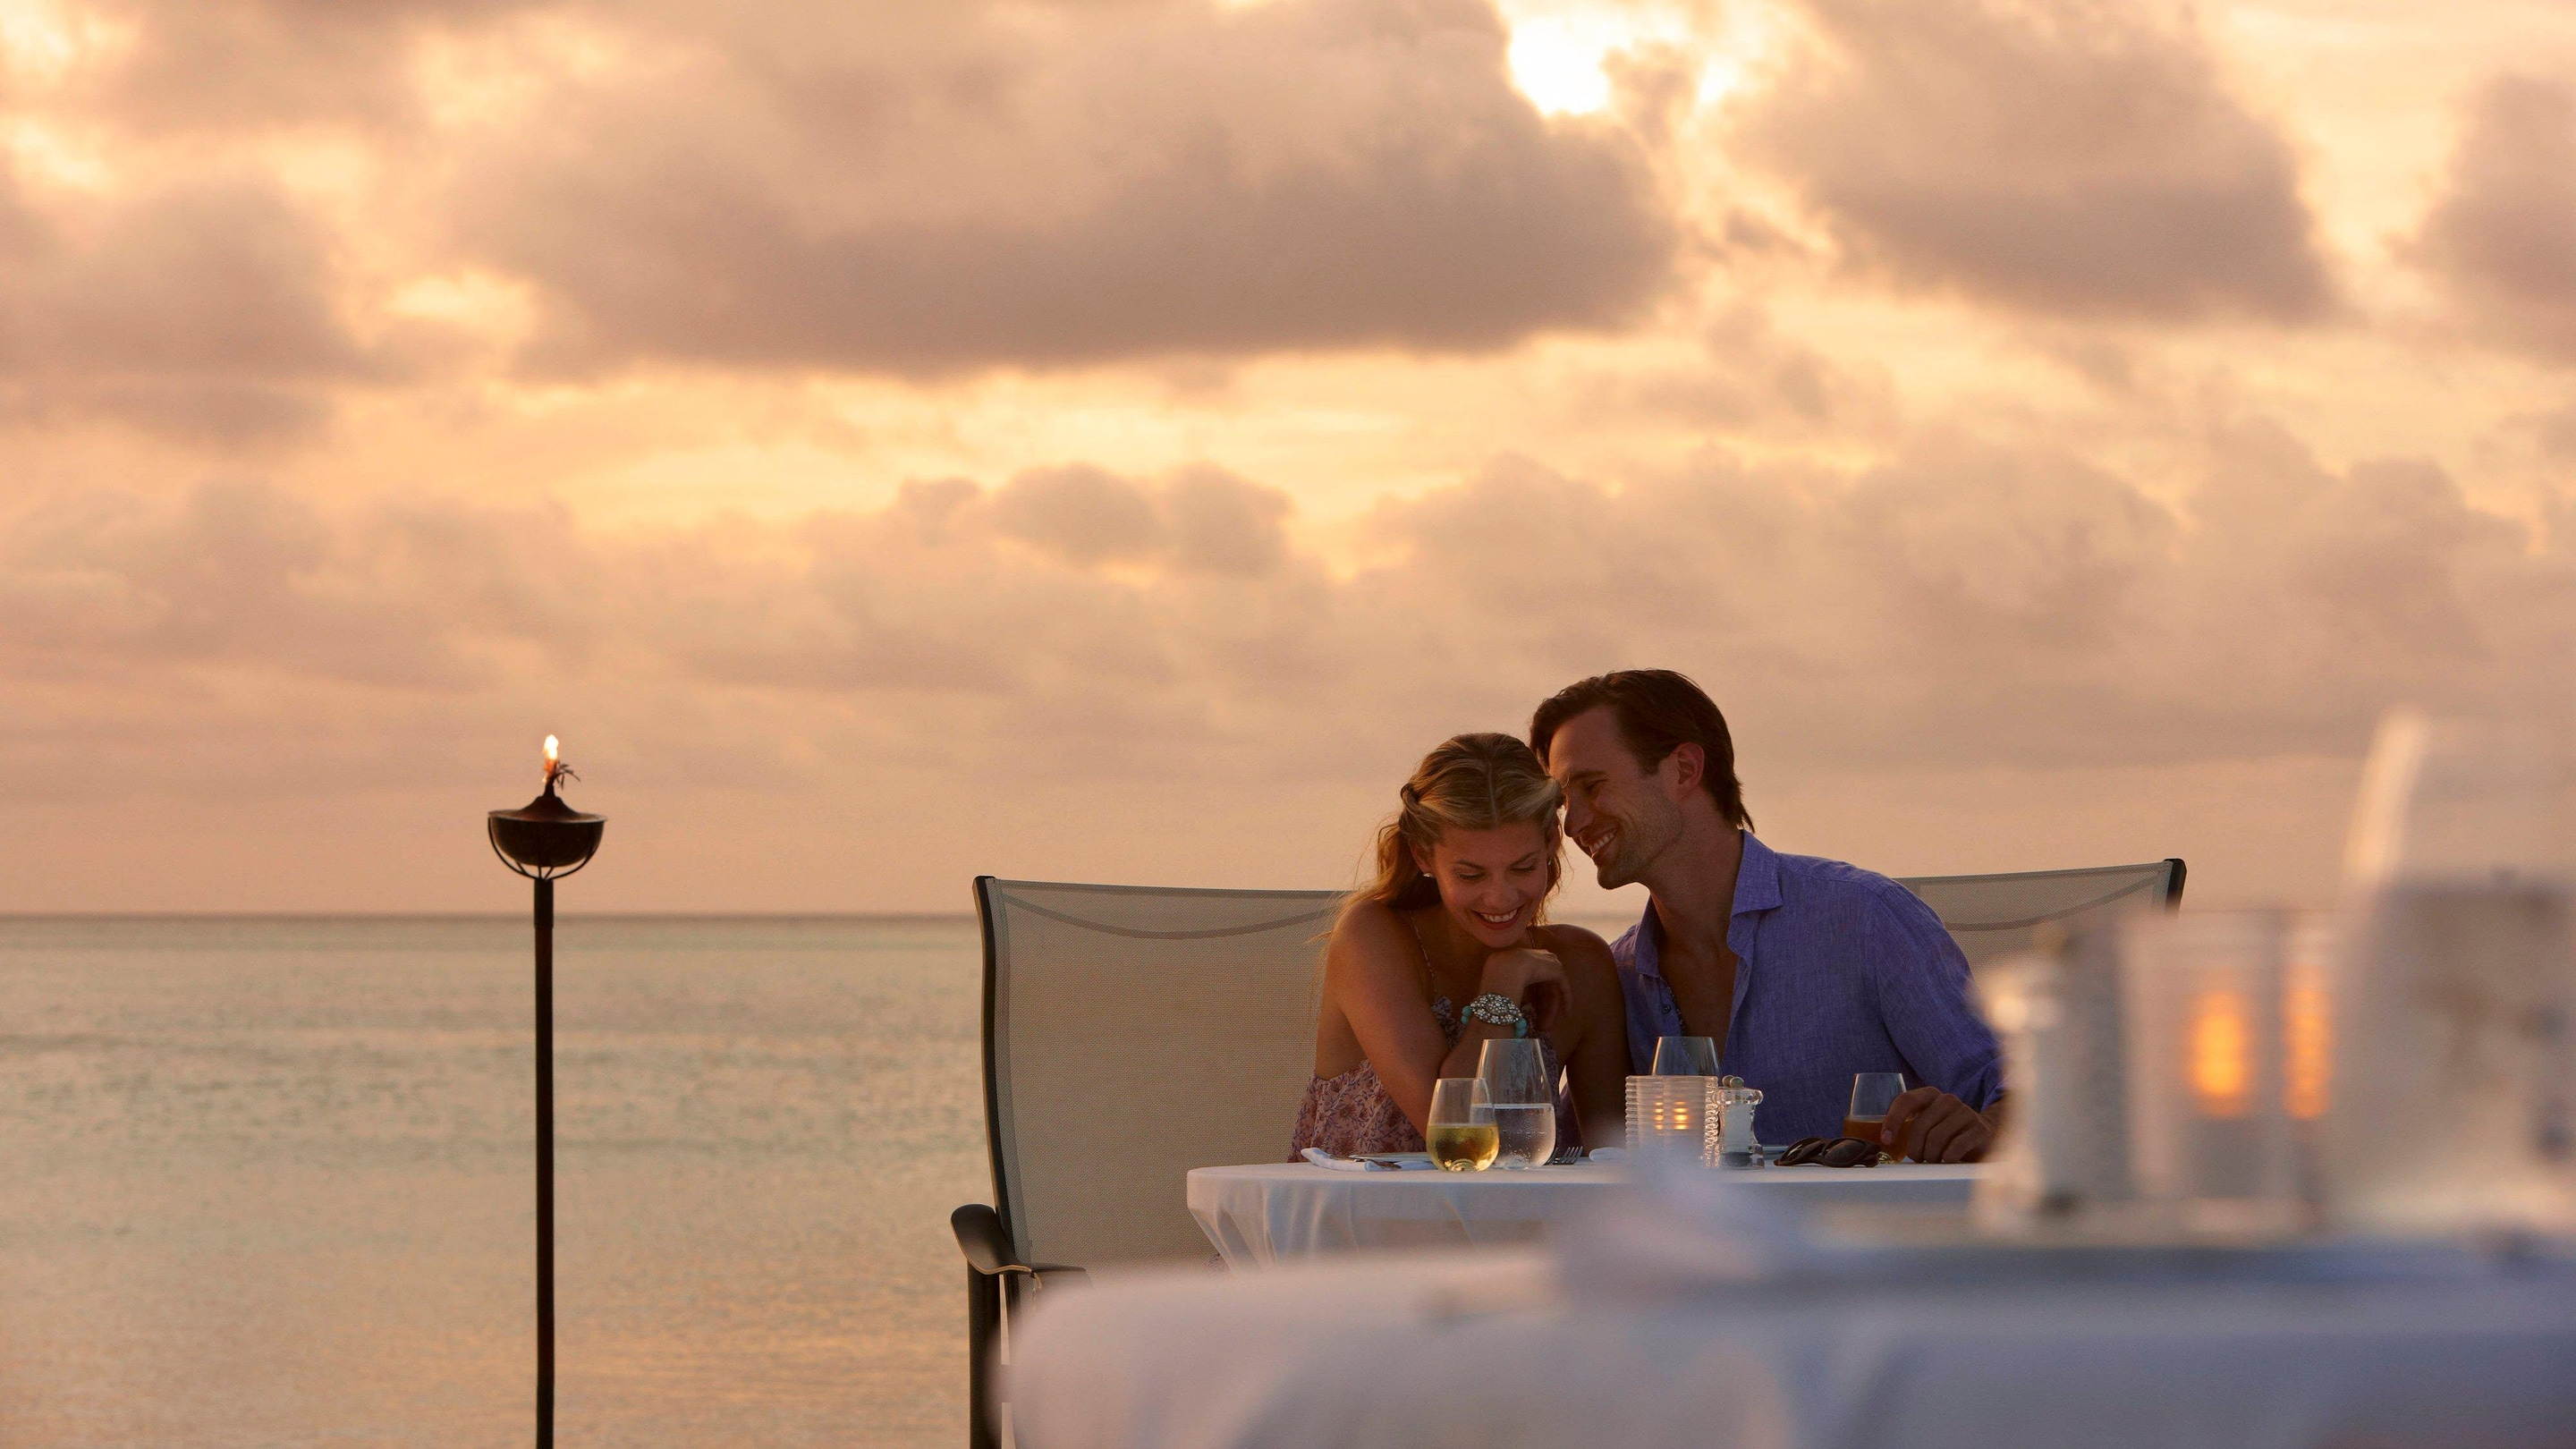 A couple enjoying an intimate moment dining on the beach with sun backlit clouds in the background.